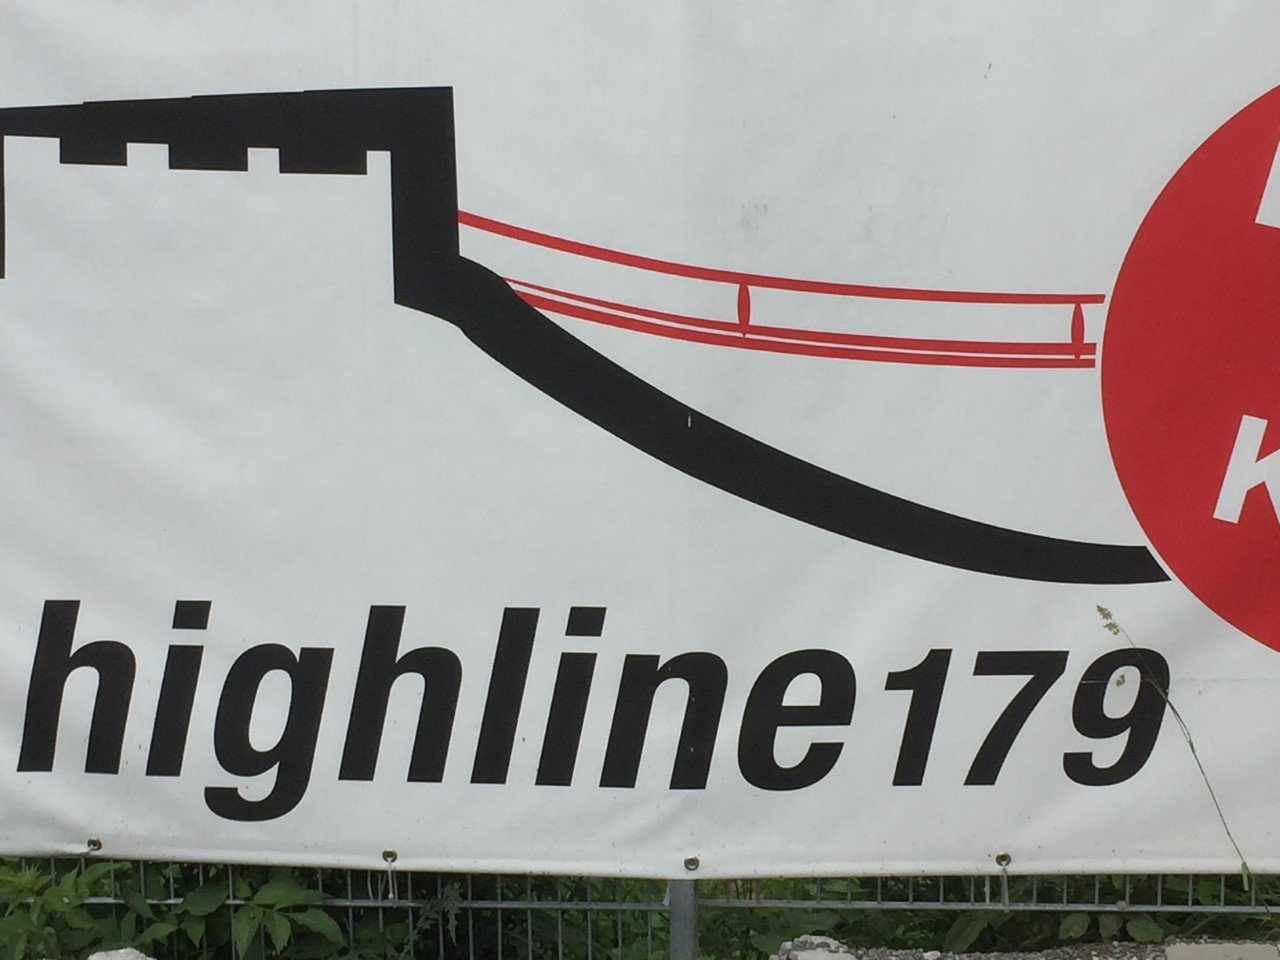 Highline 179 Suspension Bridge – Ehrenberg, Austria